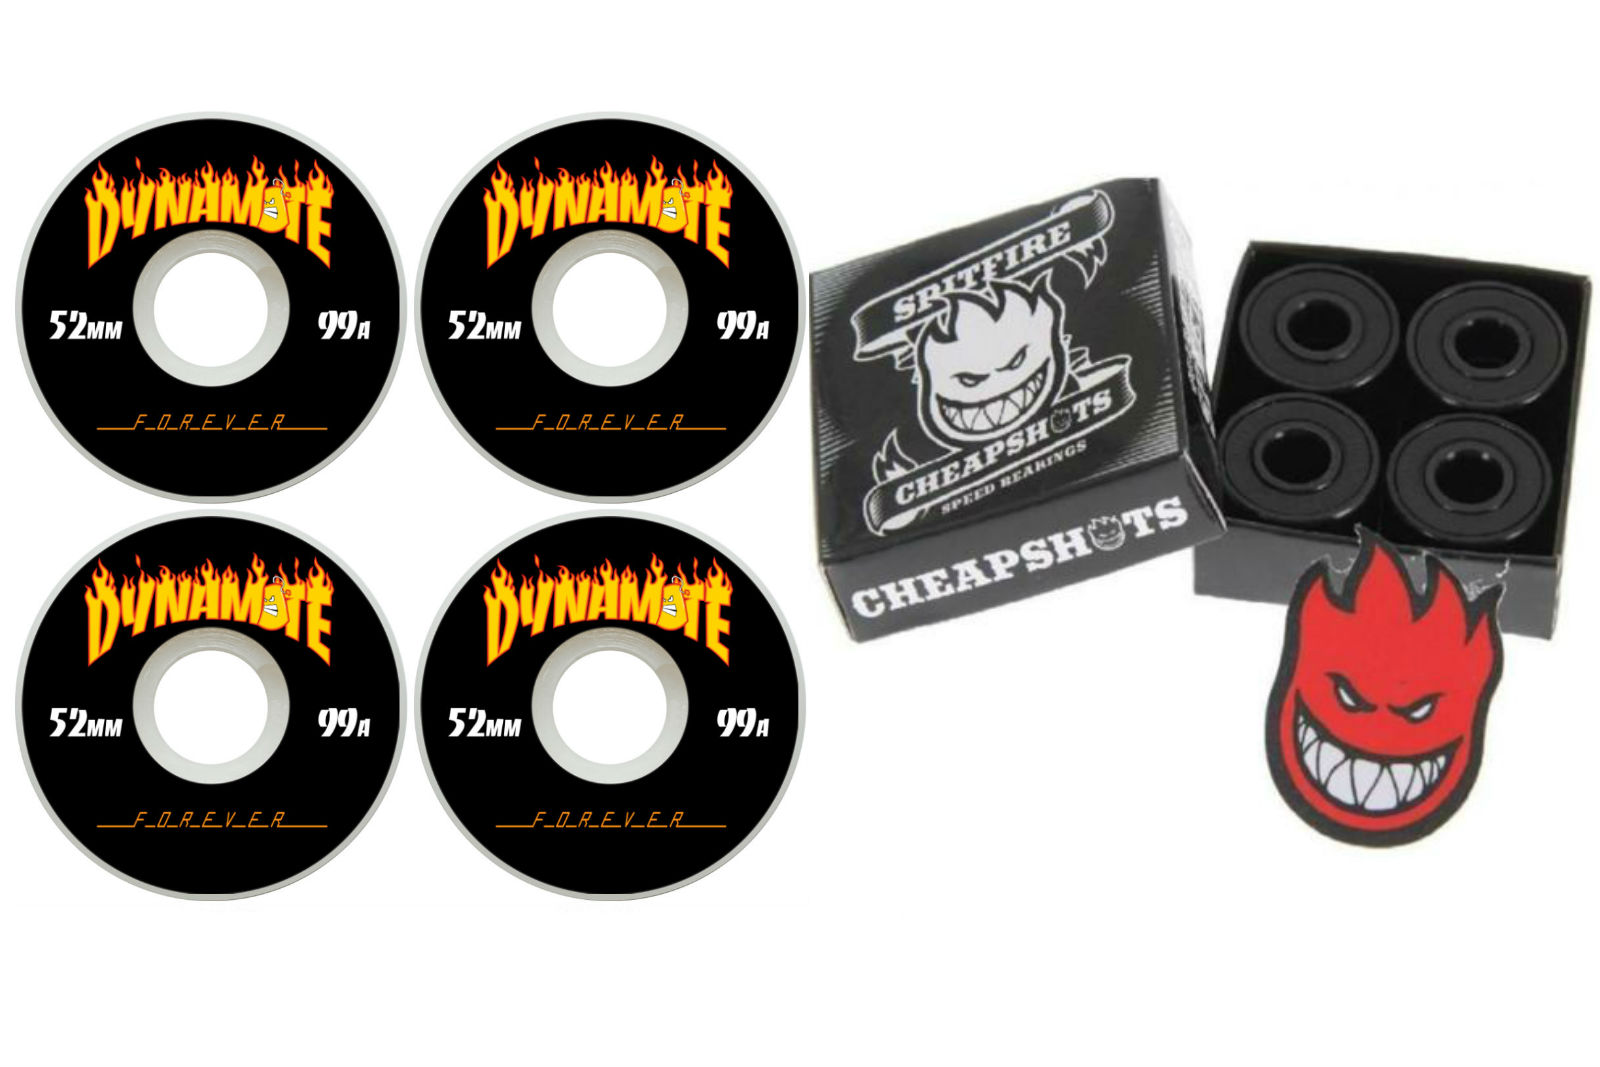 Dynamite Forever 52mm Thrashed Skateboard Wheels + Spitfire Bearings + FREE POST